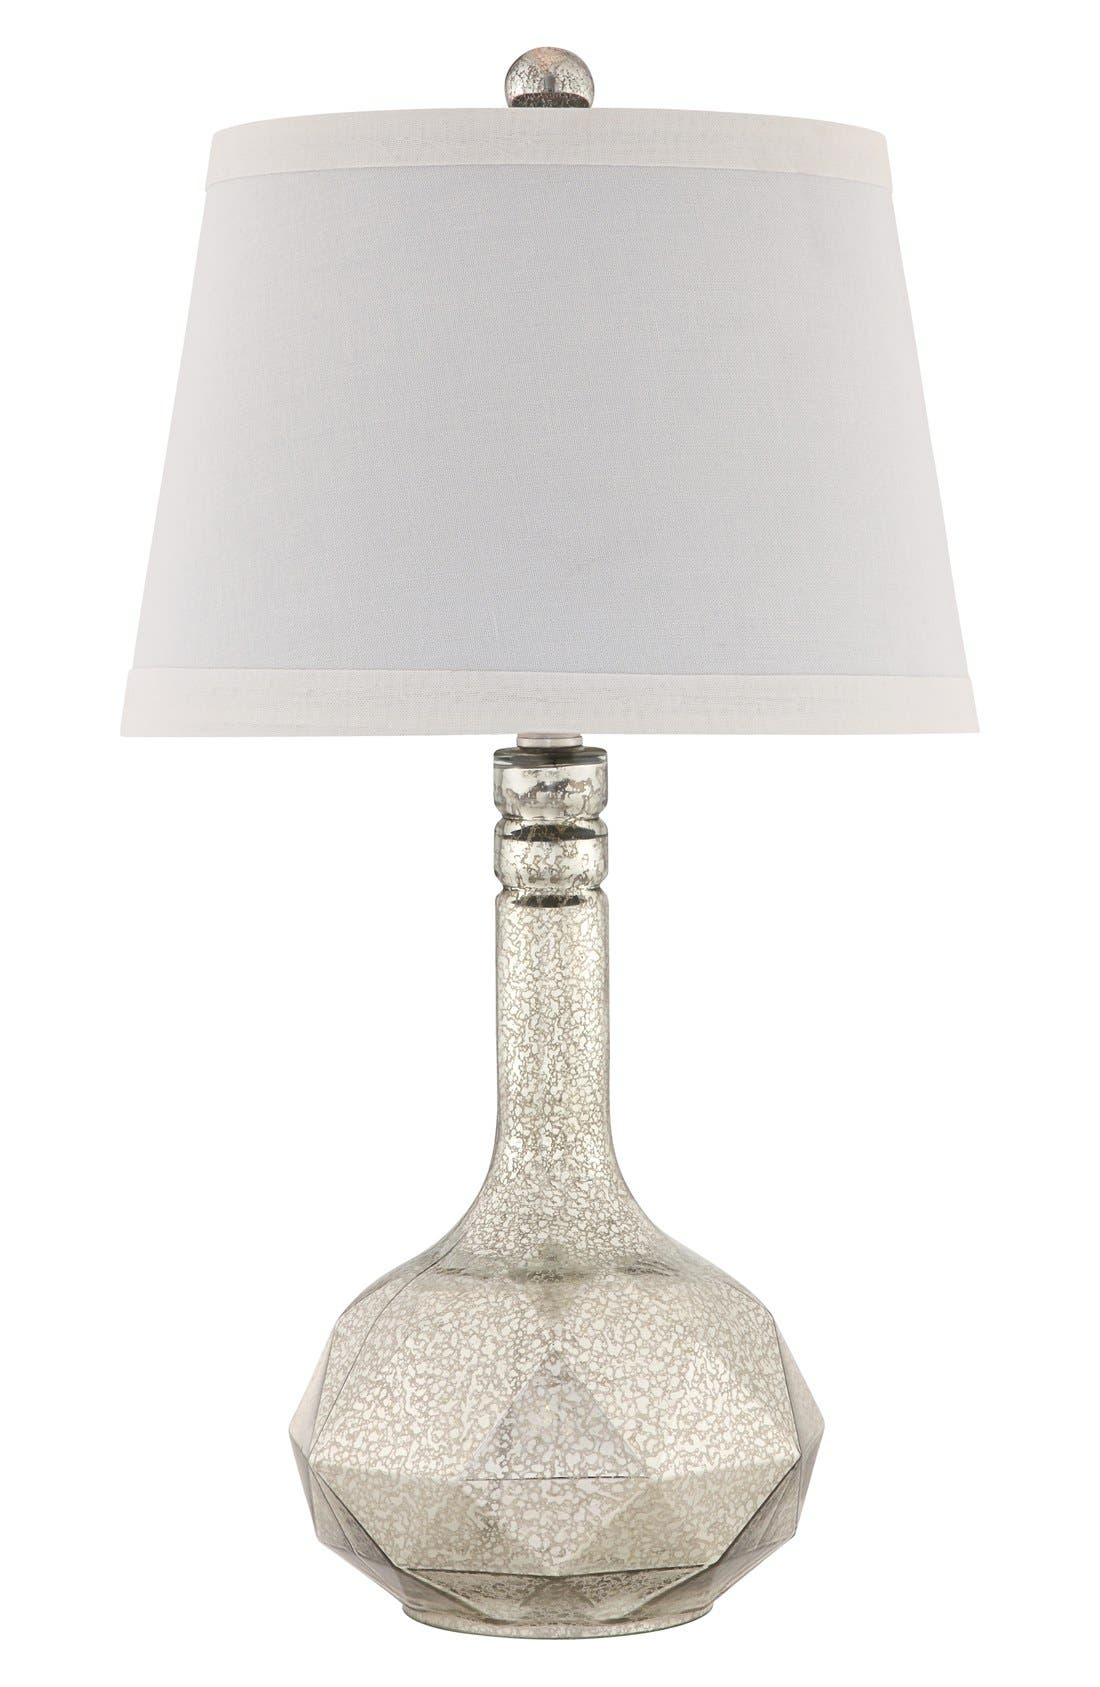 Mercury Glass Table Lamp,                         Main,                         color, Silver/ Brushed Nickel